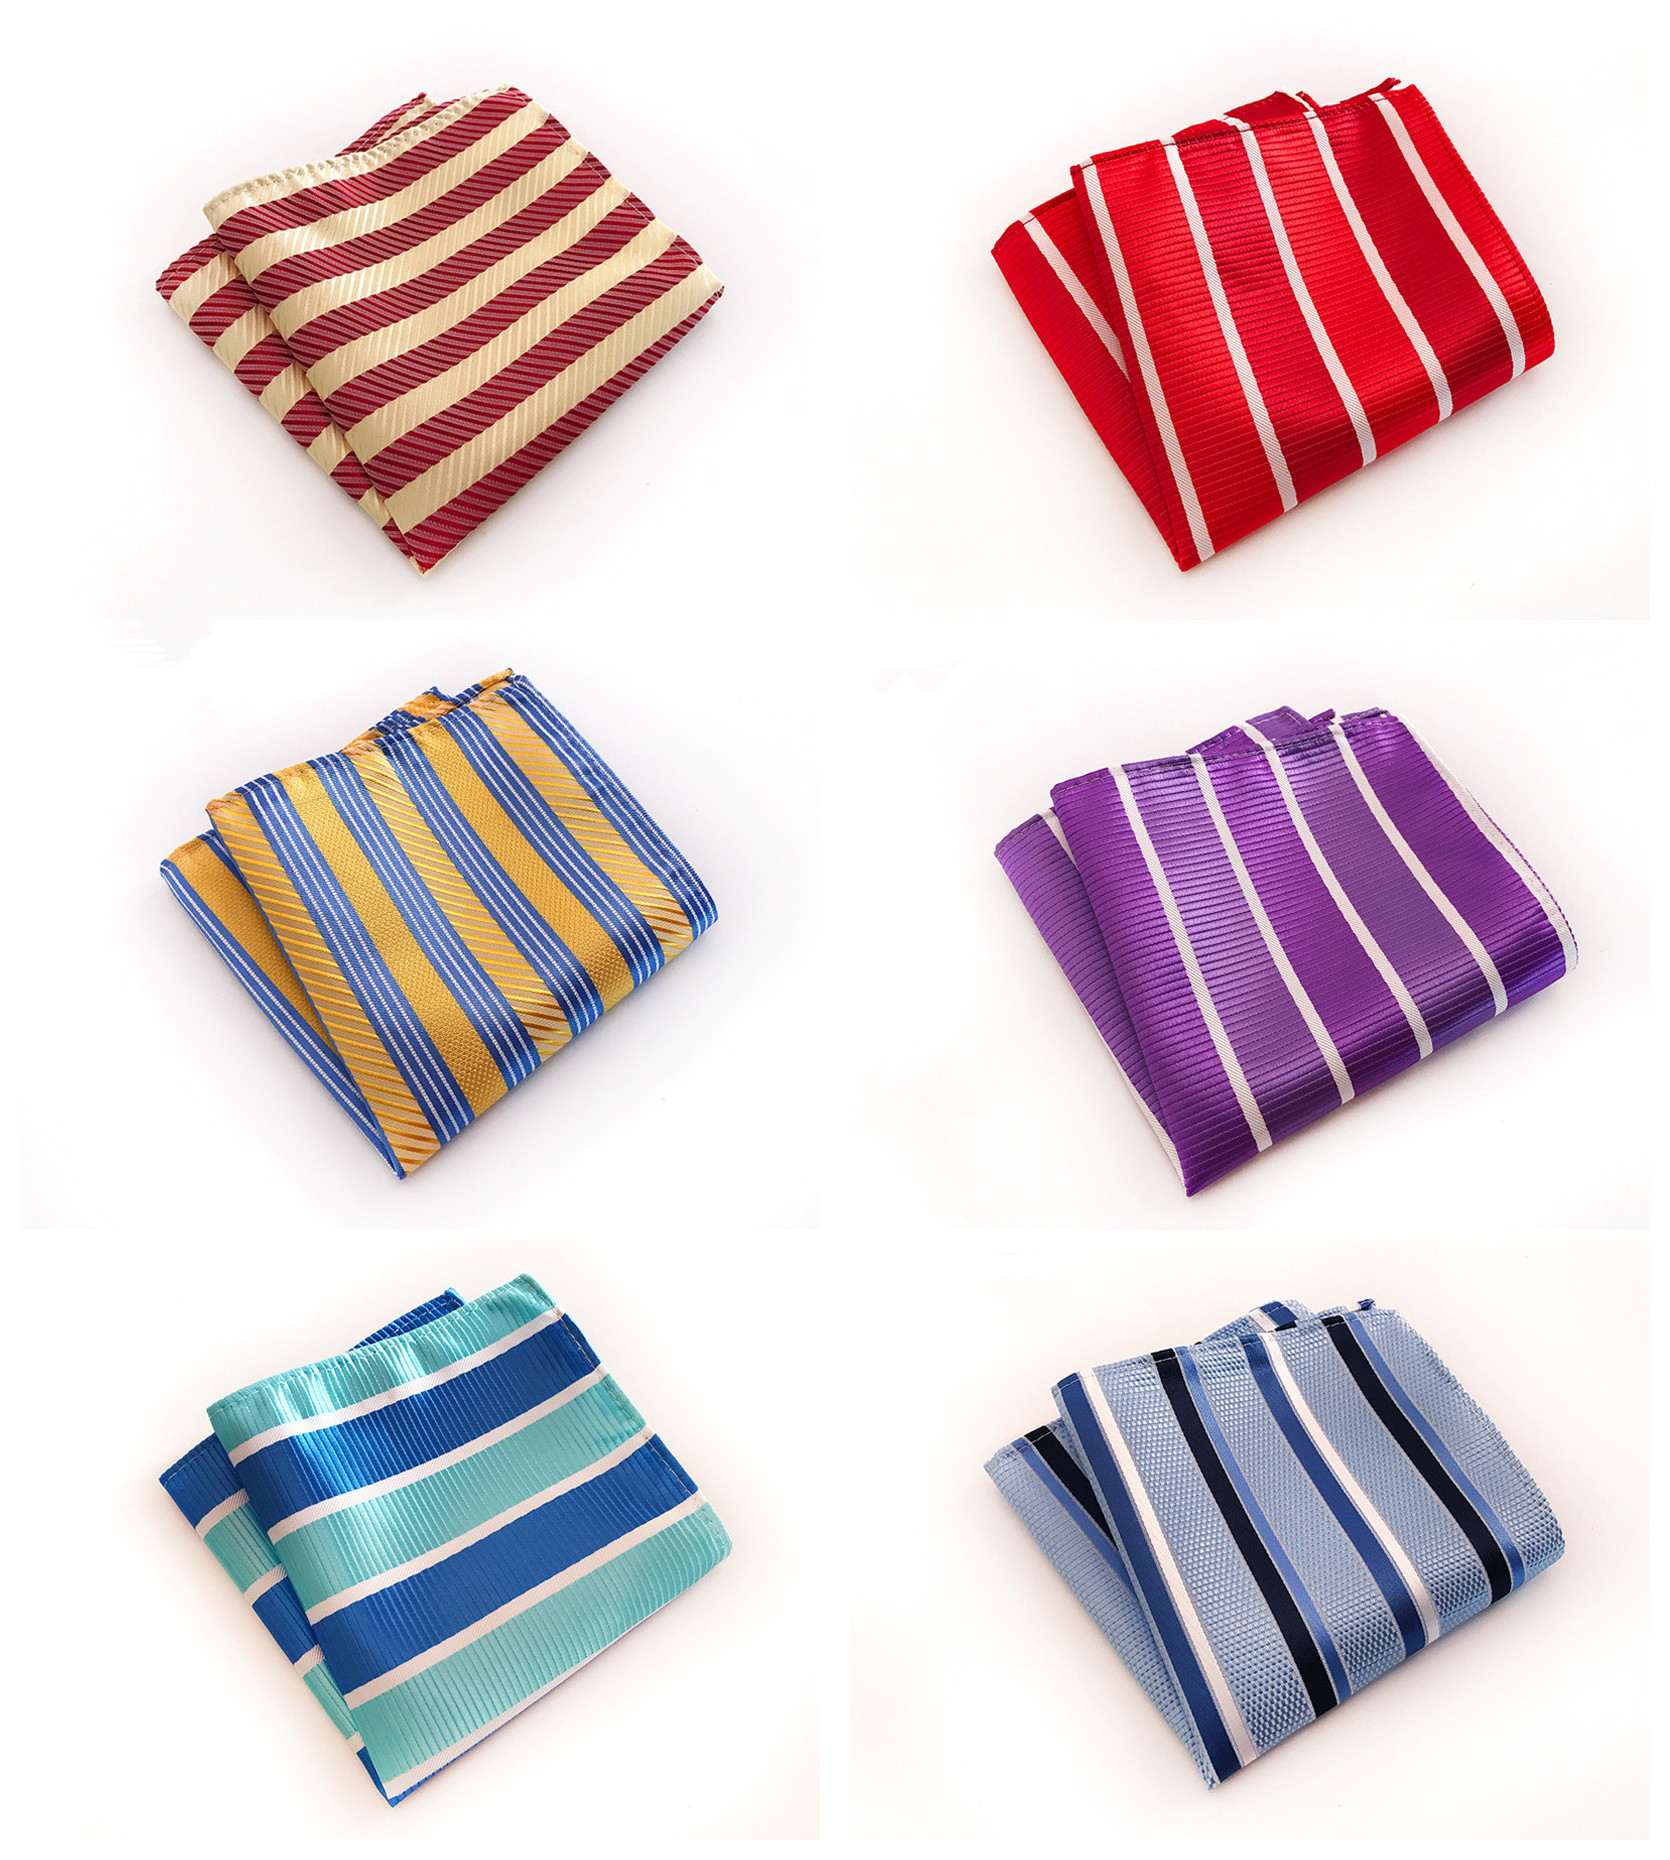 Fashion Design Men's Business Dress Pocket Towel Quality Explosion Models 25x25cm Multicolor Striped Polyester Pocket Towel